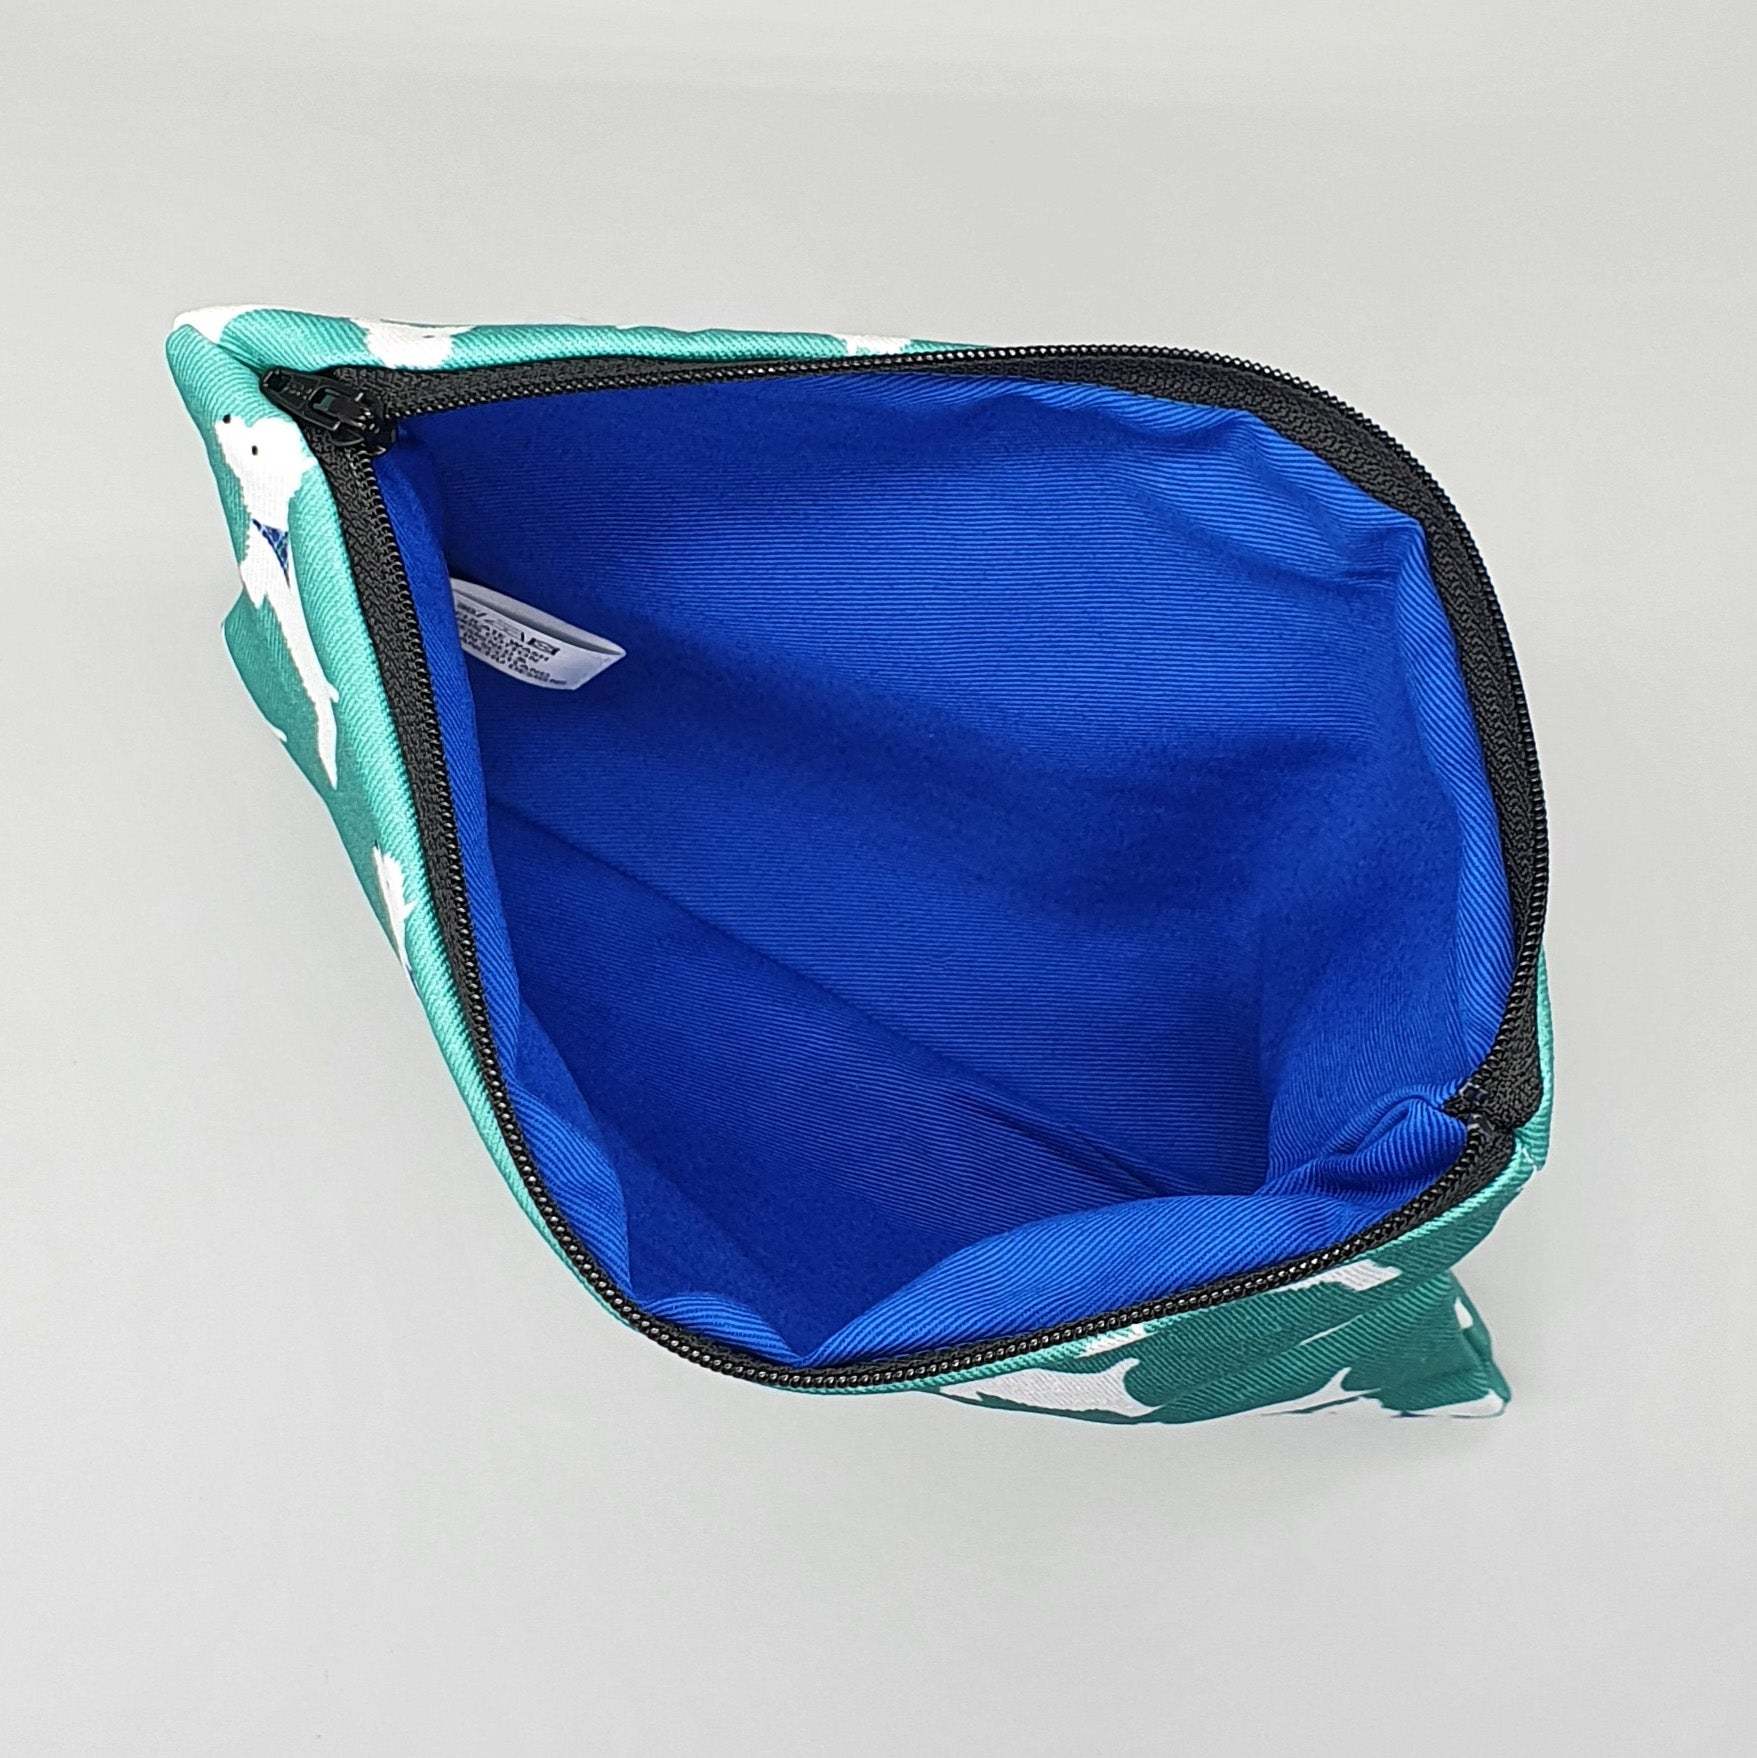 Westie accessories bag with blue interior lining